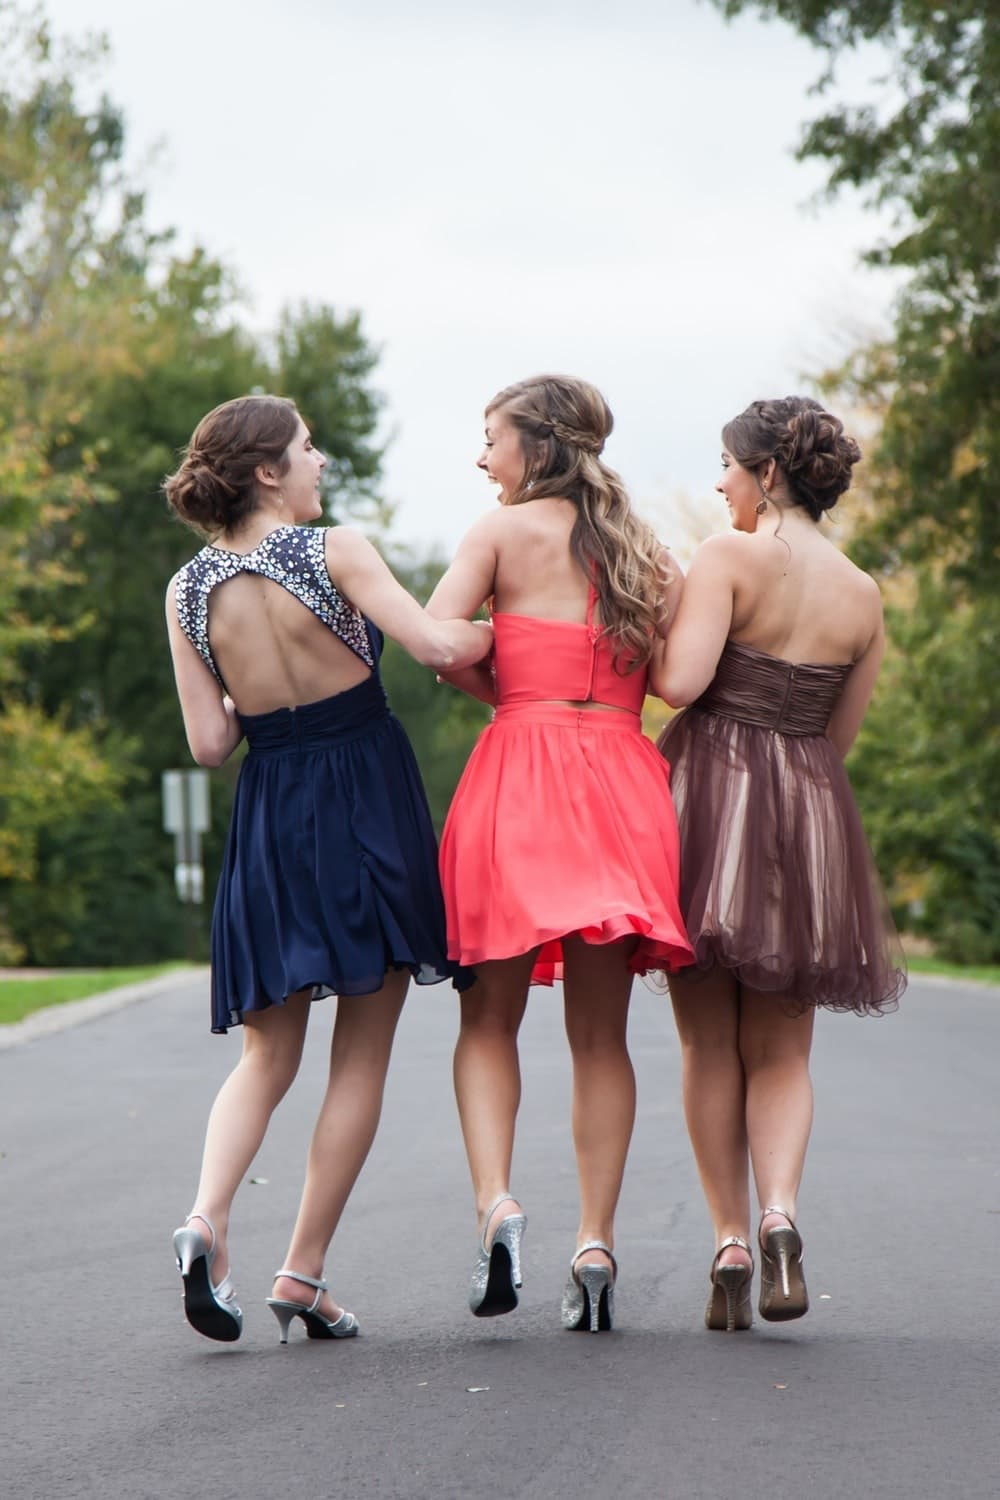 Girls arrive for prom in dresses